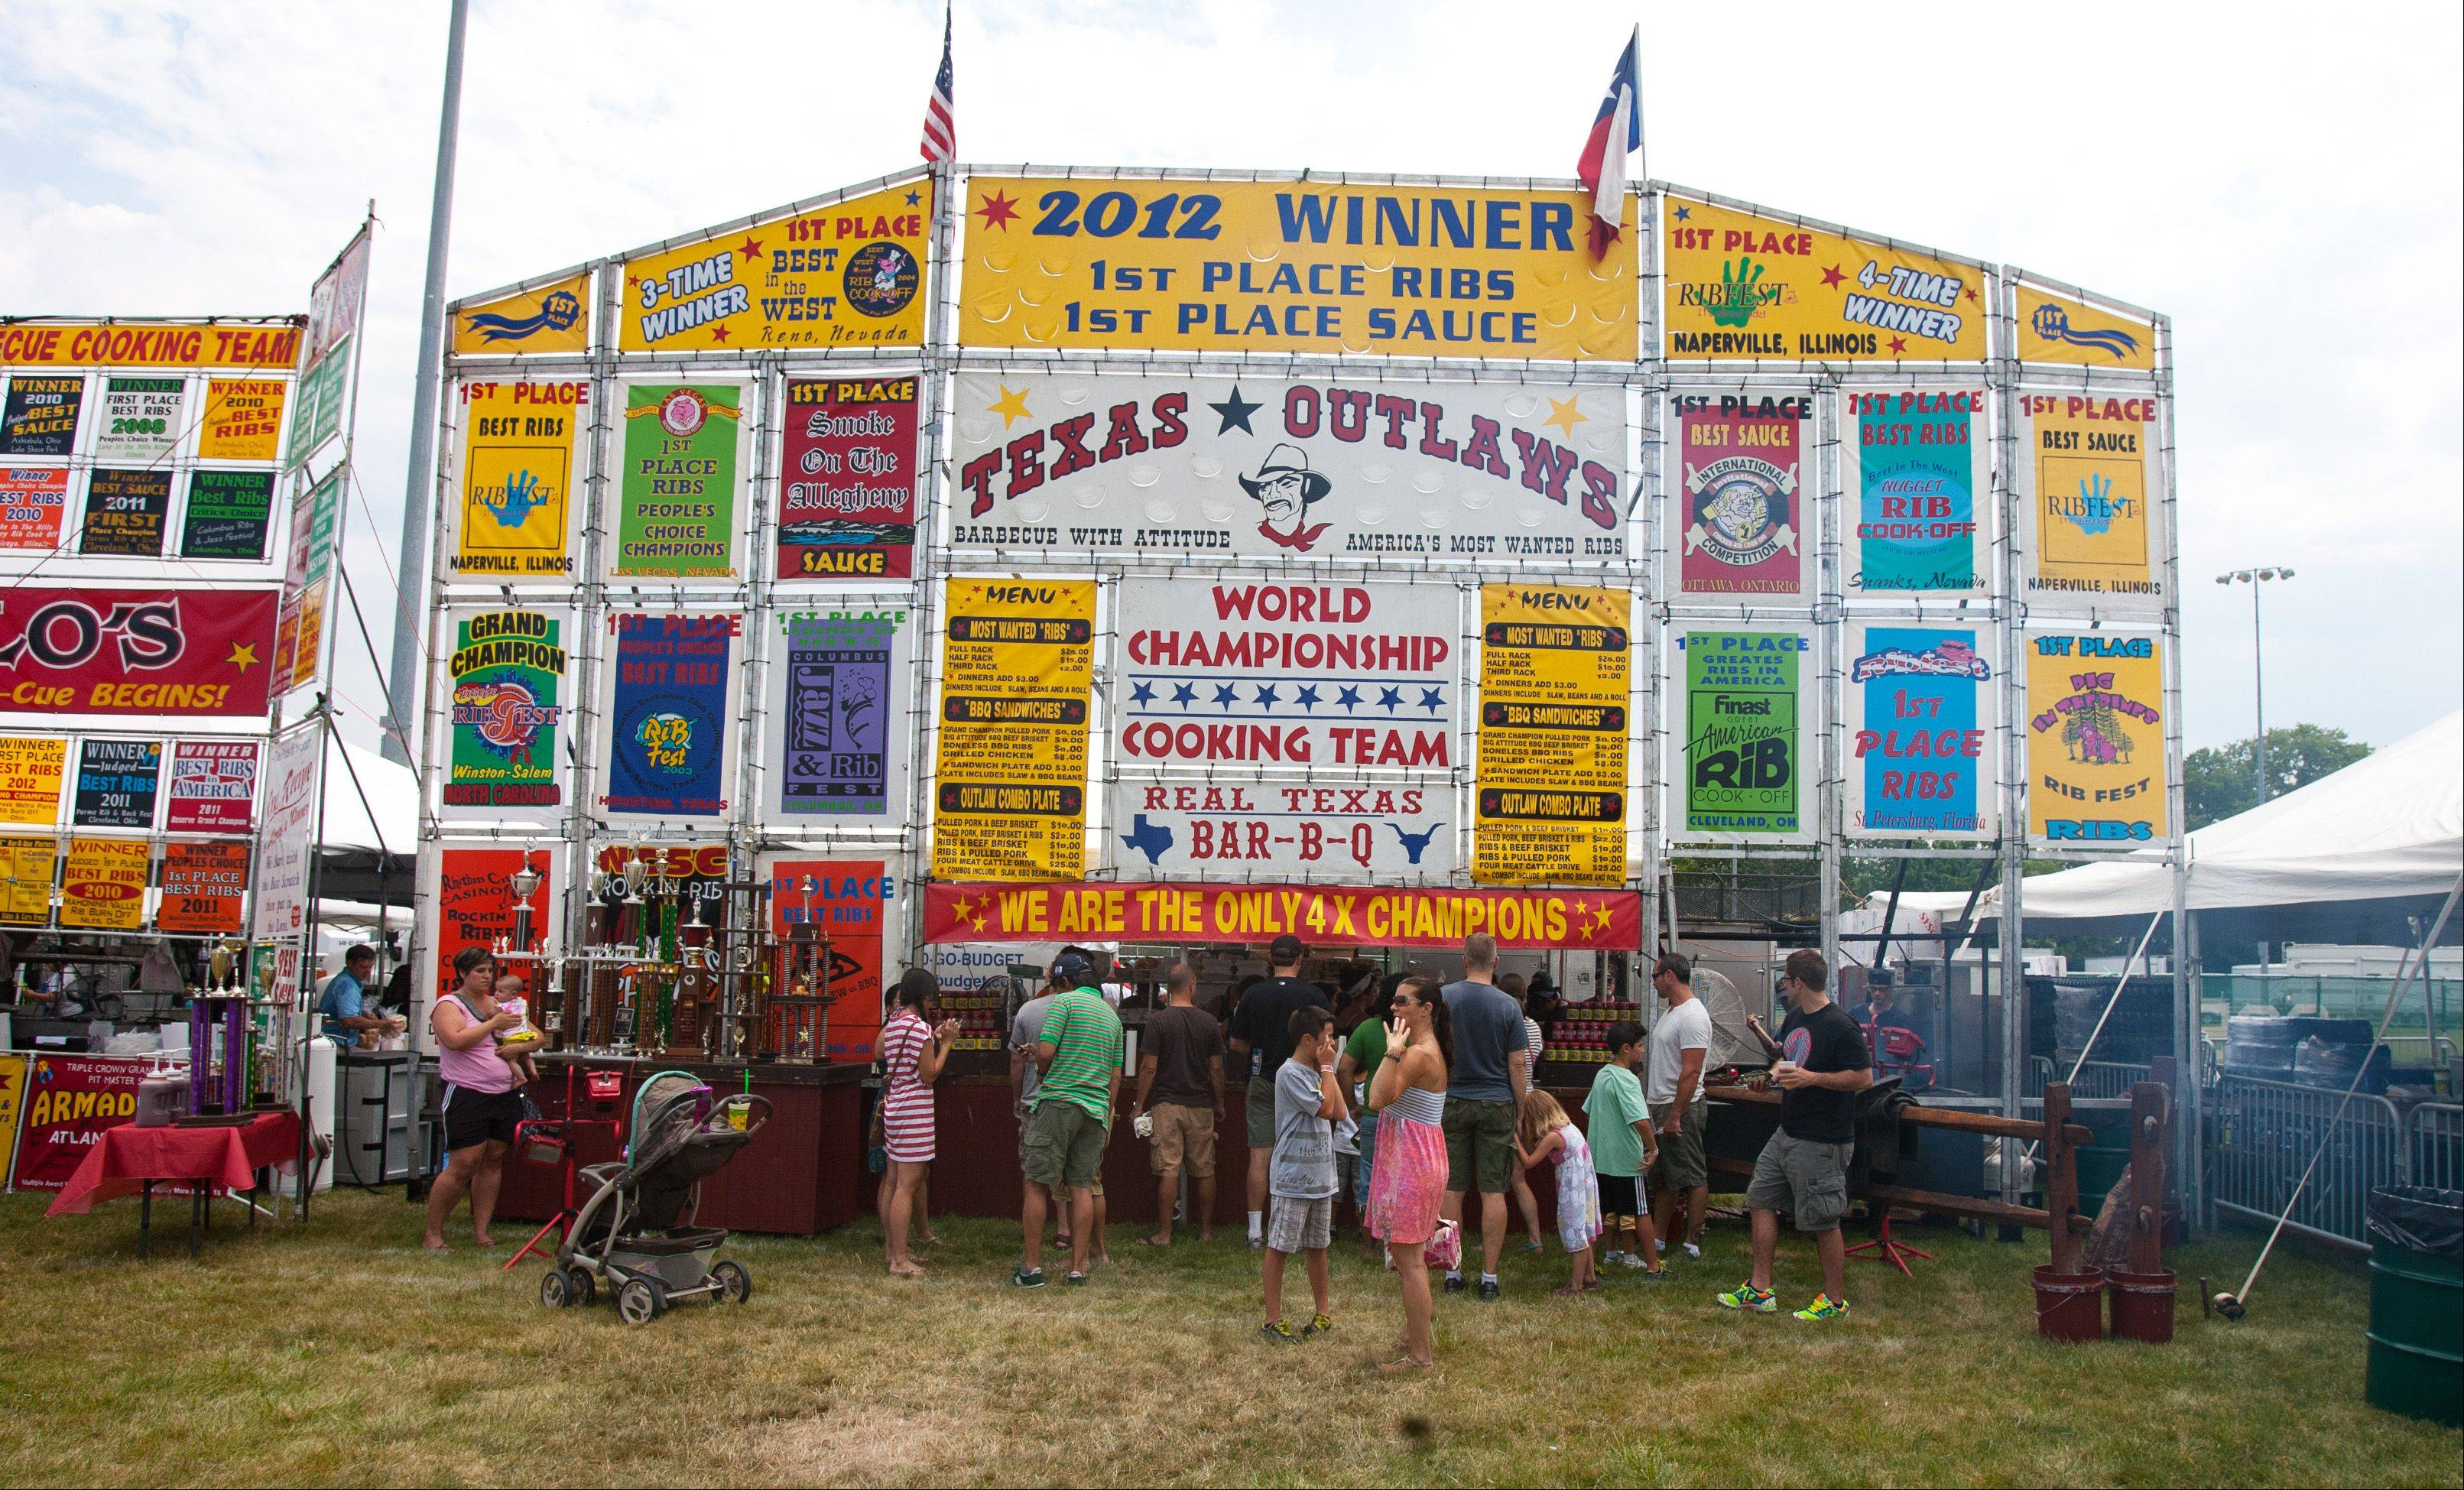 As Ribfest returns to Naperville�s Knoch Park this week, families will find deals during Family Fun Time, which offers reduced adult admission and deals on meal prices from noon to 3 p.m. daily.